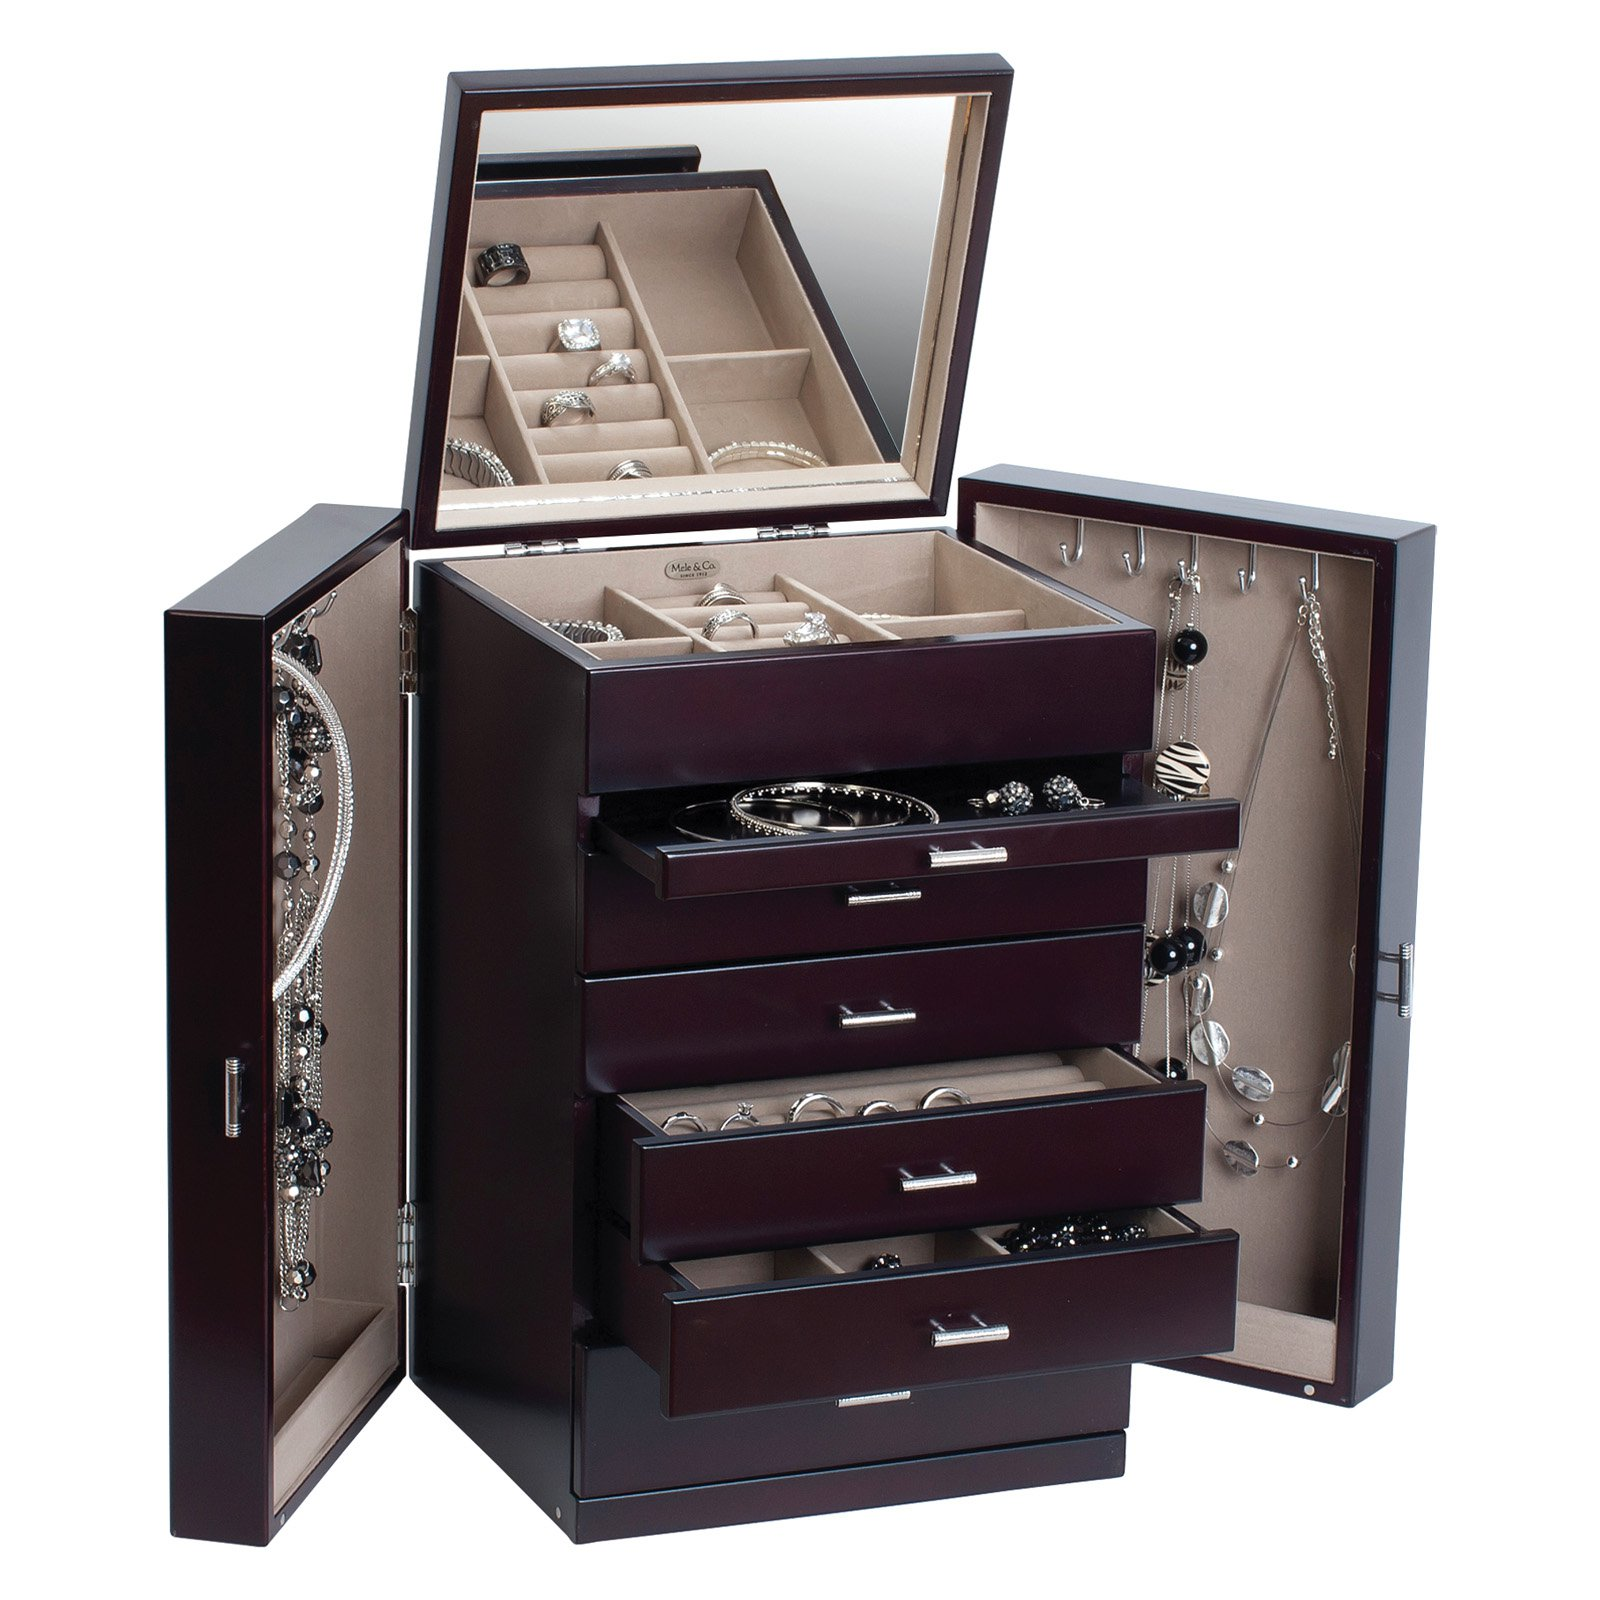 Geneva Upright Wooden Jewelry Box  sc 1 st  Walmart & Mele u0026amp; Co. Geneva Upright Wooden Jewelry Box - Walmart.com